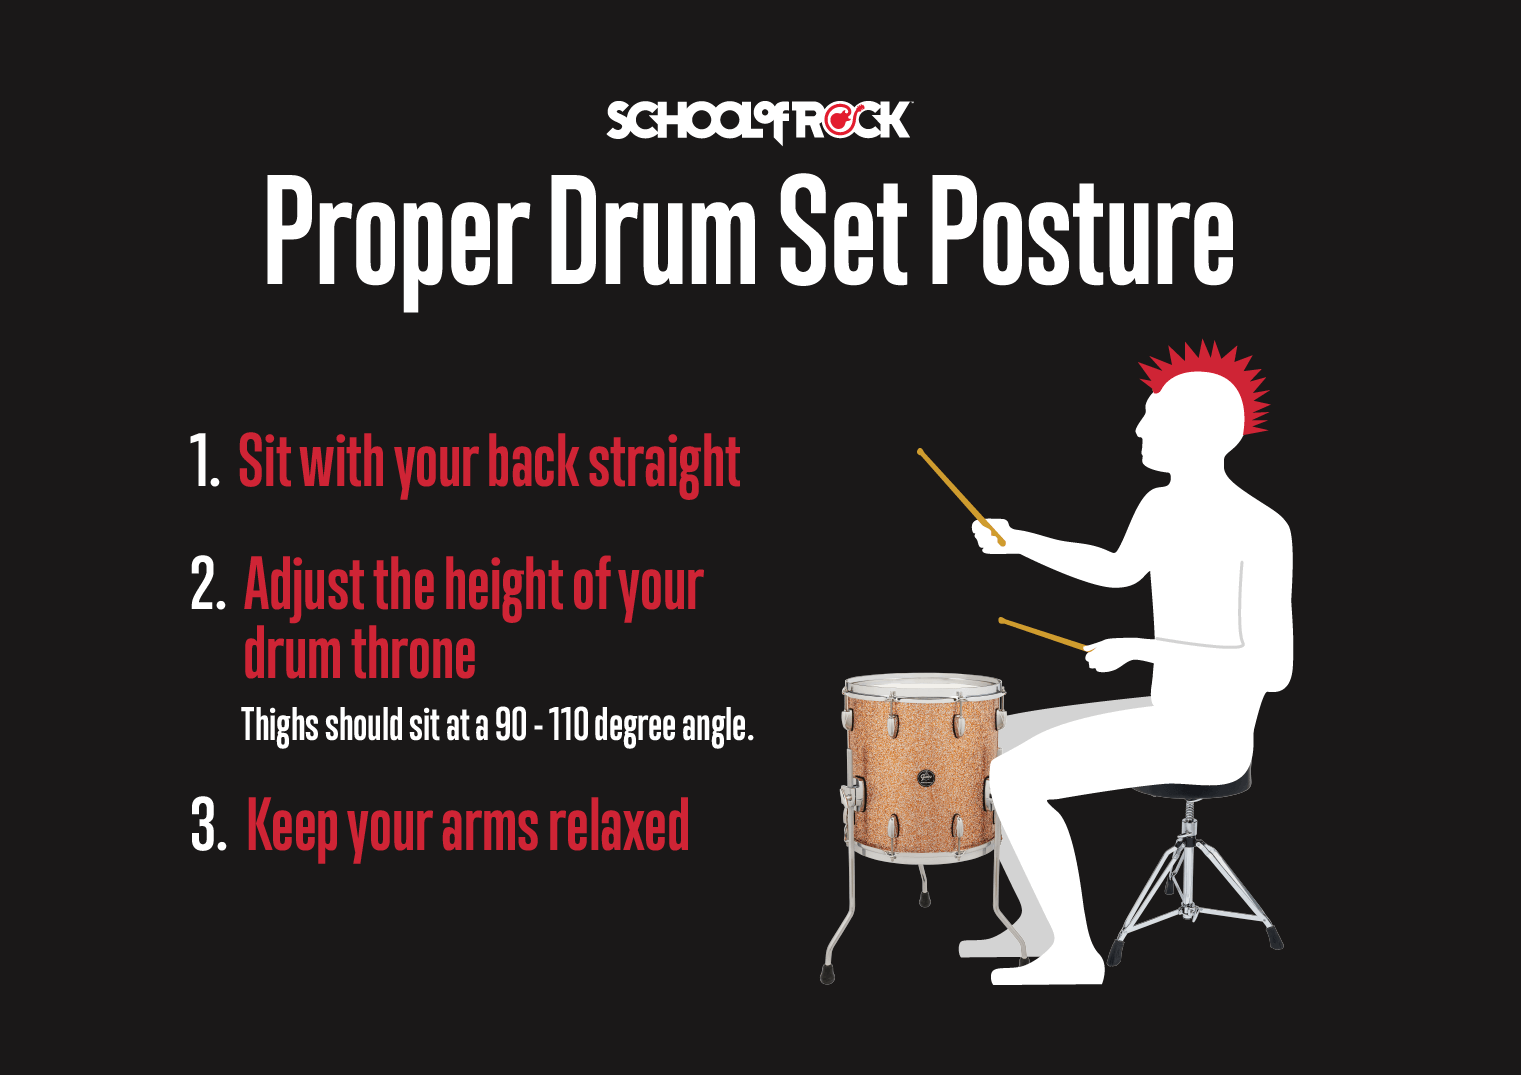 Proper drum set posture and drum throne height